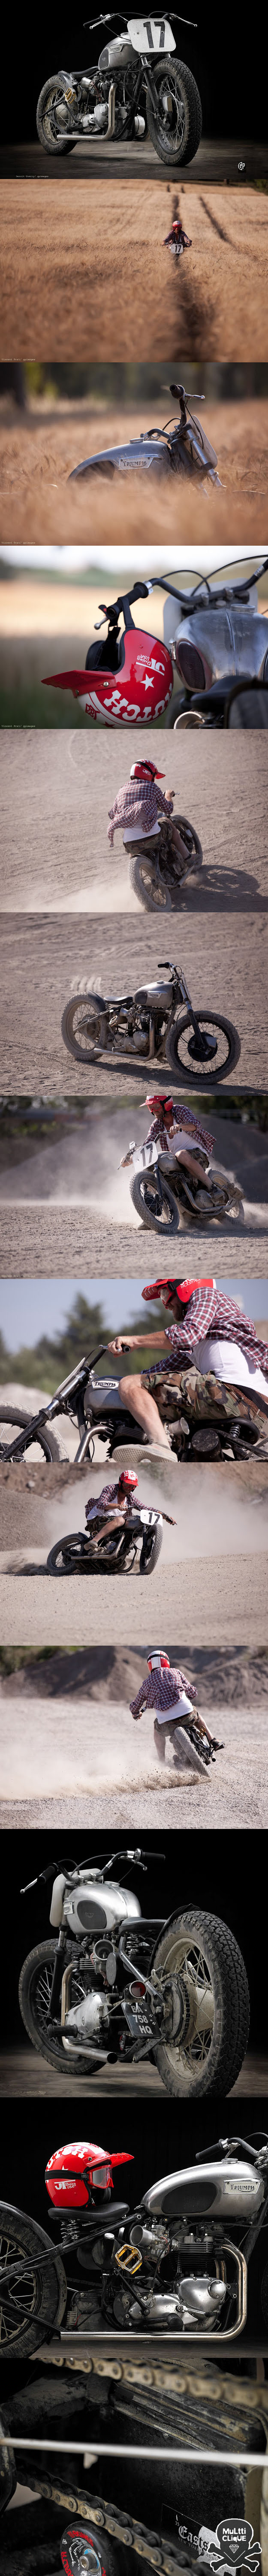 Great combo of product and lifestyle photography - Triumph T120